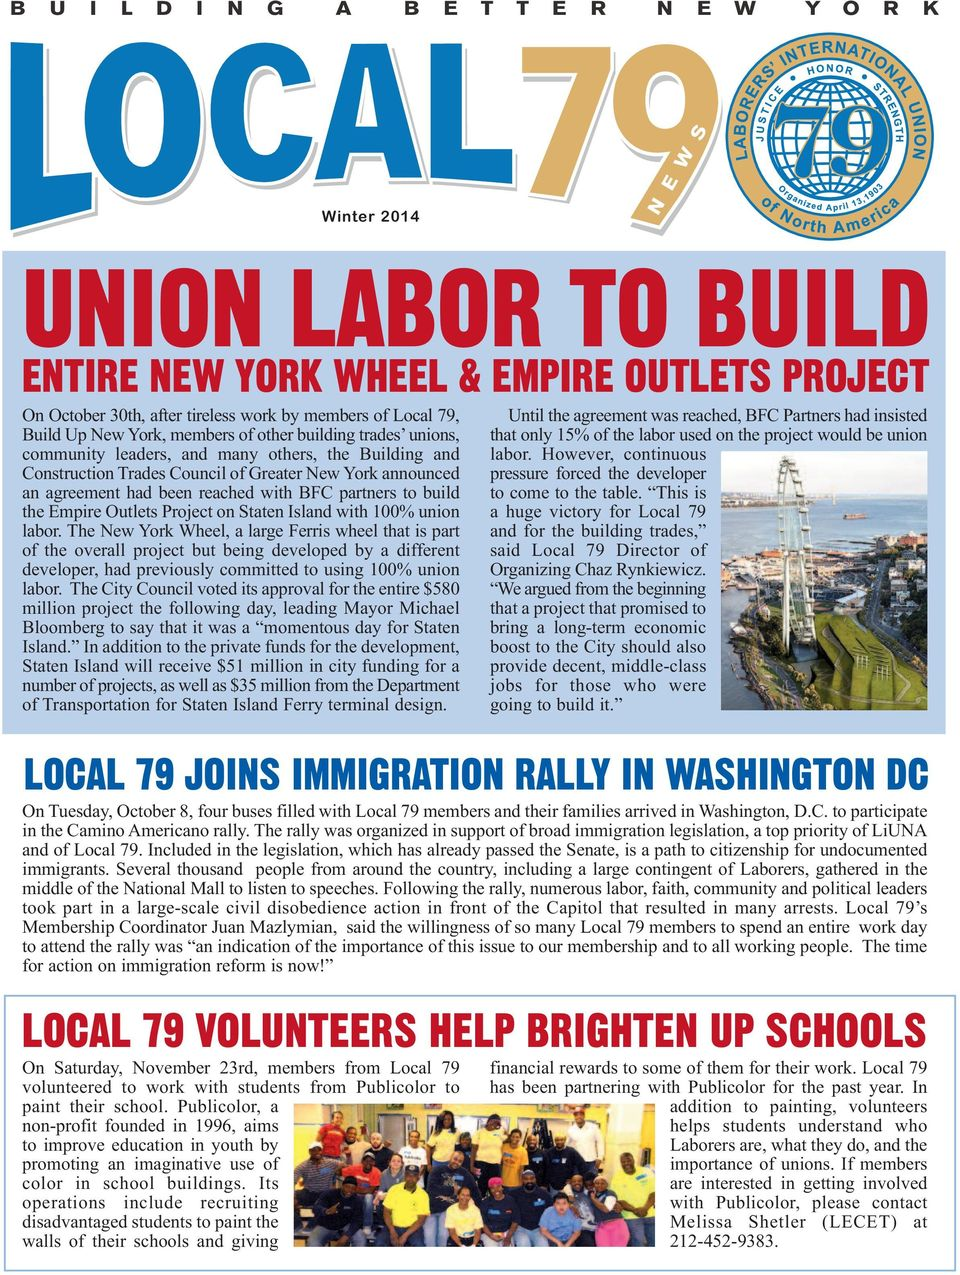 Project on Staten Island with 100% union labor.